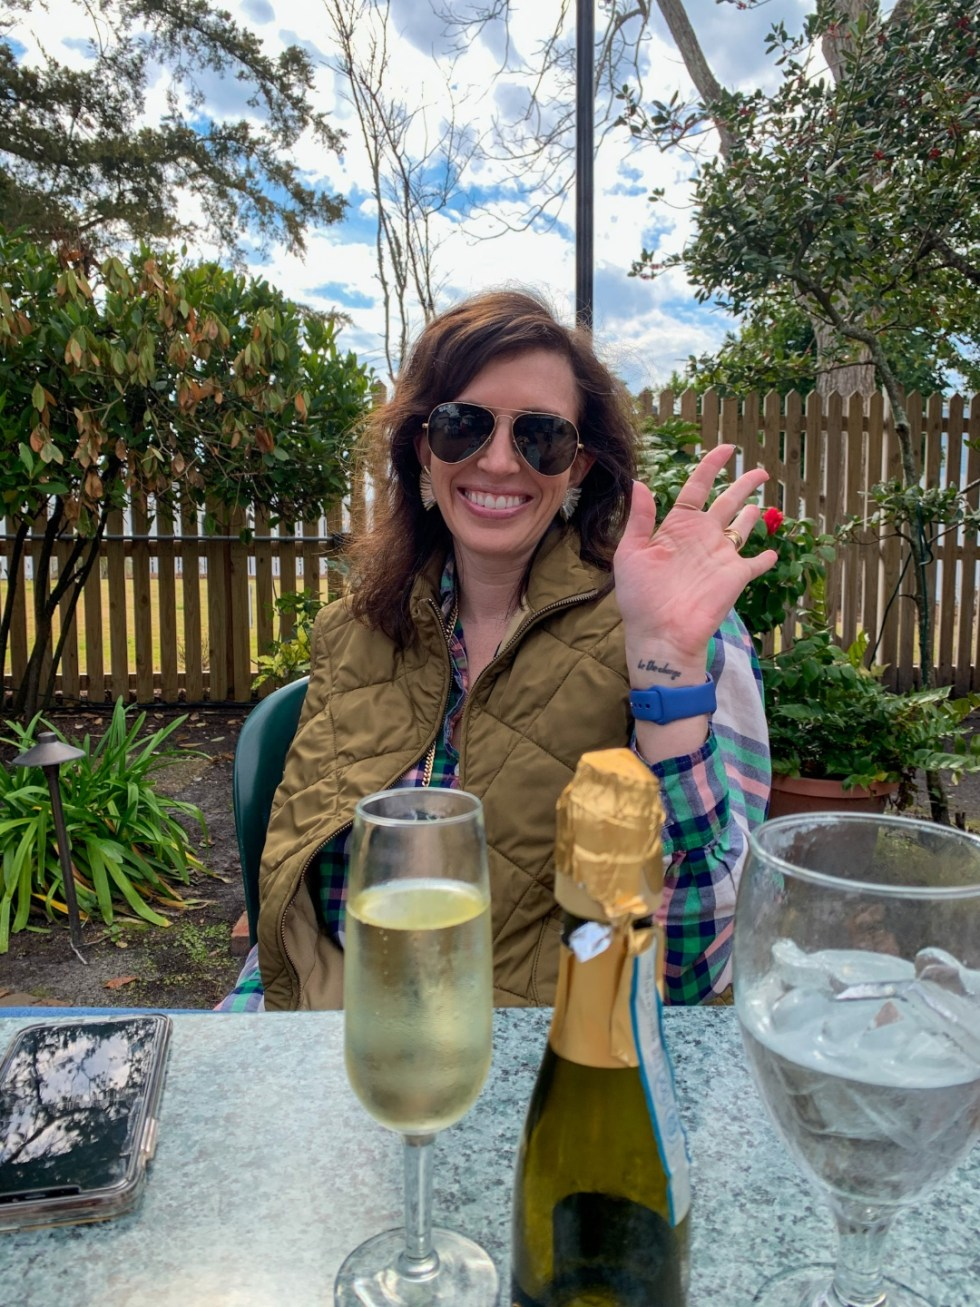 Weekend Travel: The Best Things to Do in Beaufort NC in 48 Hours - I'm Fixin' To - @imfixintoblog |Things to Do in Beaufort NC by popular NC travel blog, I'm Fixin' To: image of a woman sitting at an outdoor table set with a bottle of white wine.